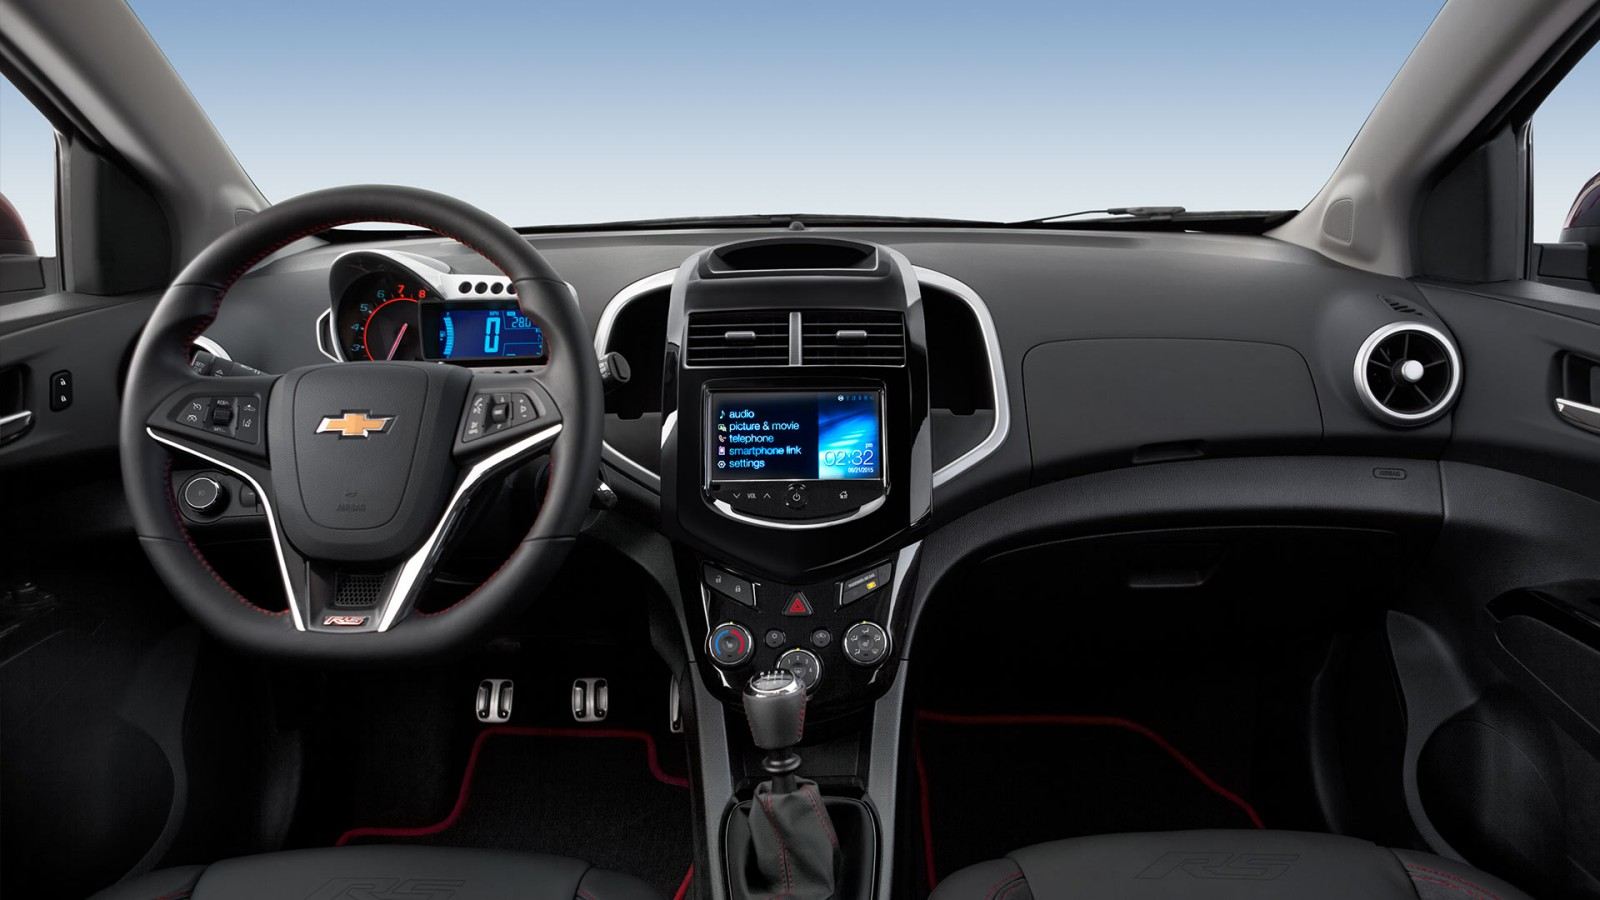 2016 chevrolet sonic interior features